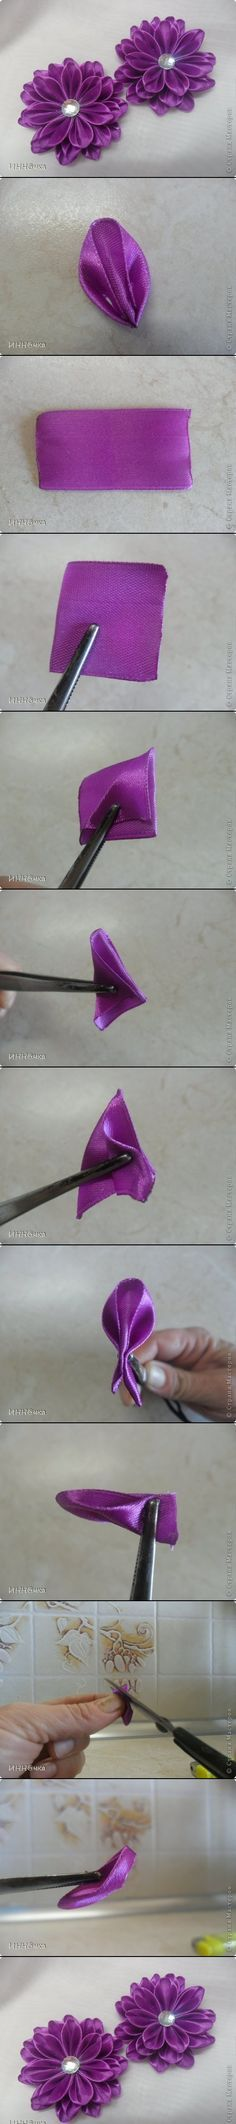 PURPLE RIBBON FLOWER DIY #craft #photos tutorial ++ FLOR HECHA DE CINTA INSTRUCCIONES EN FOTOS MANUALIDAD